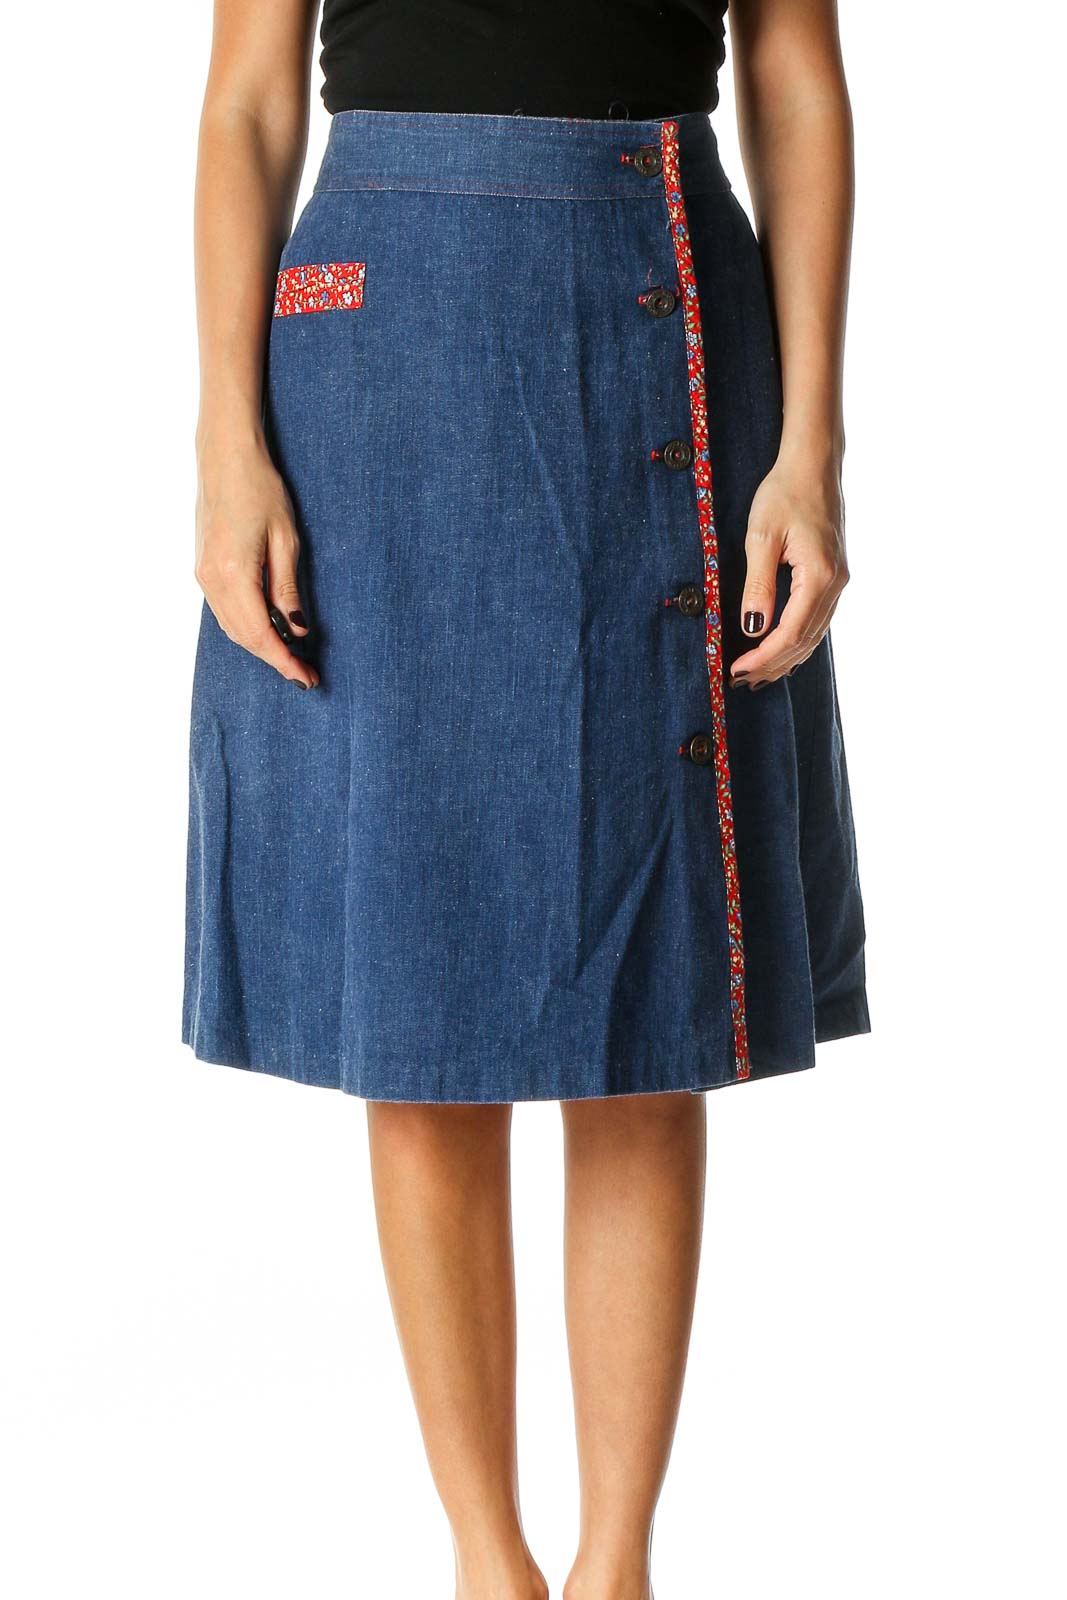 Blue Solid Retro A-Line Skirt Front